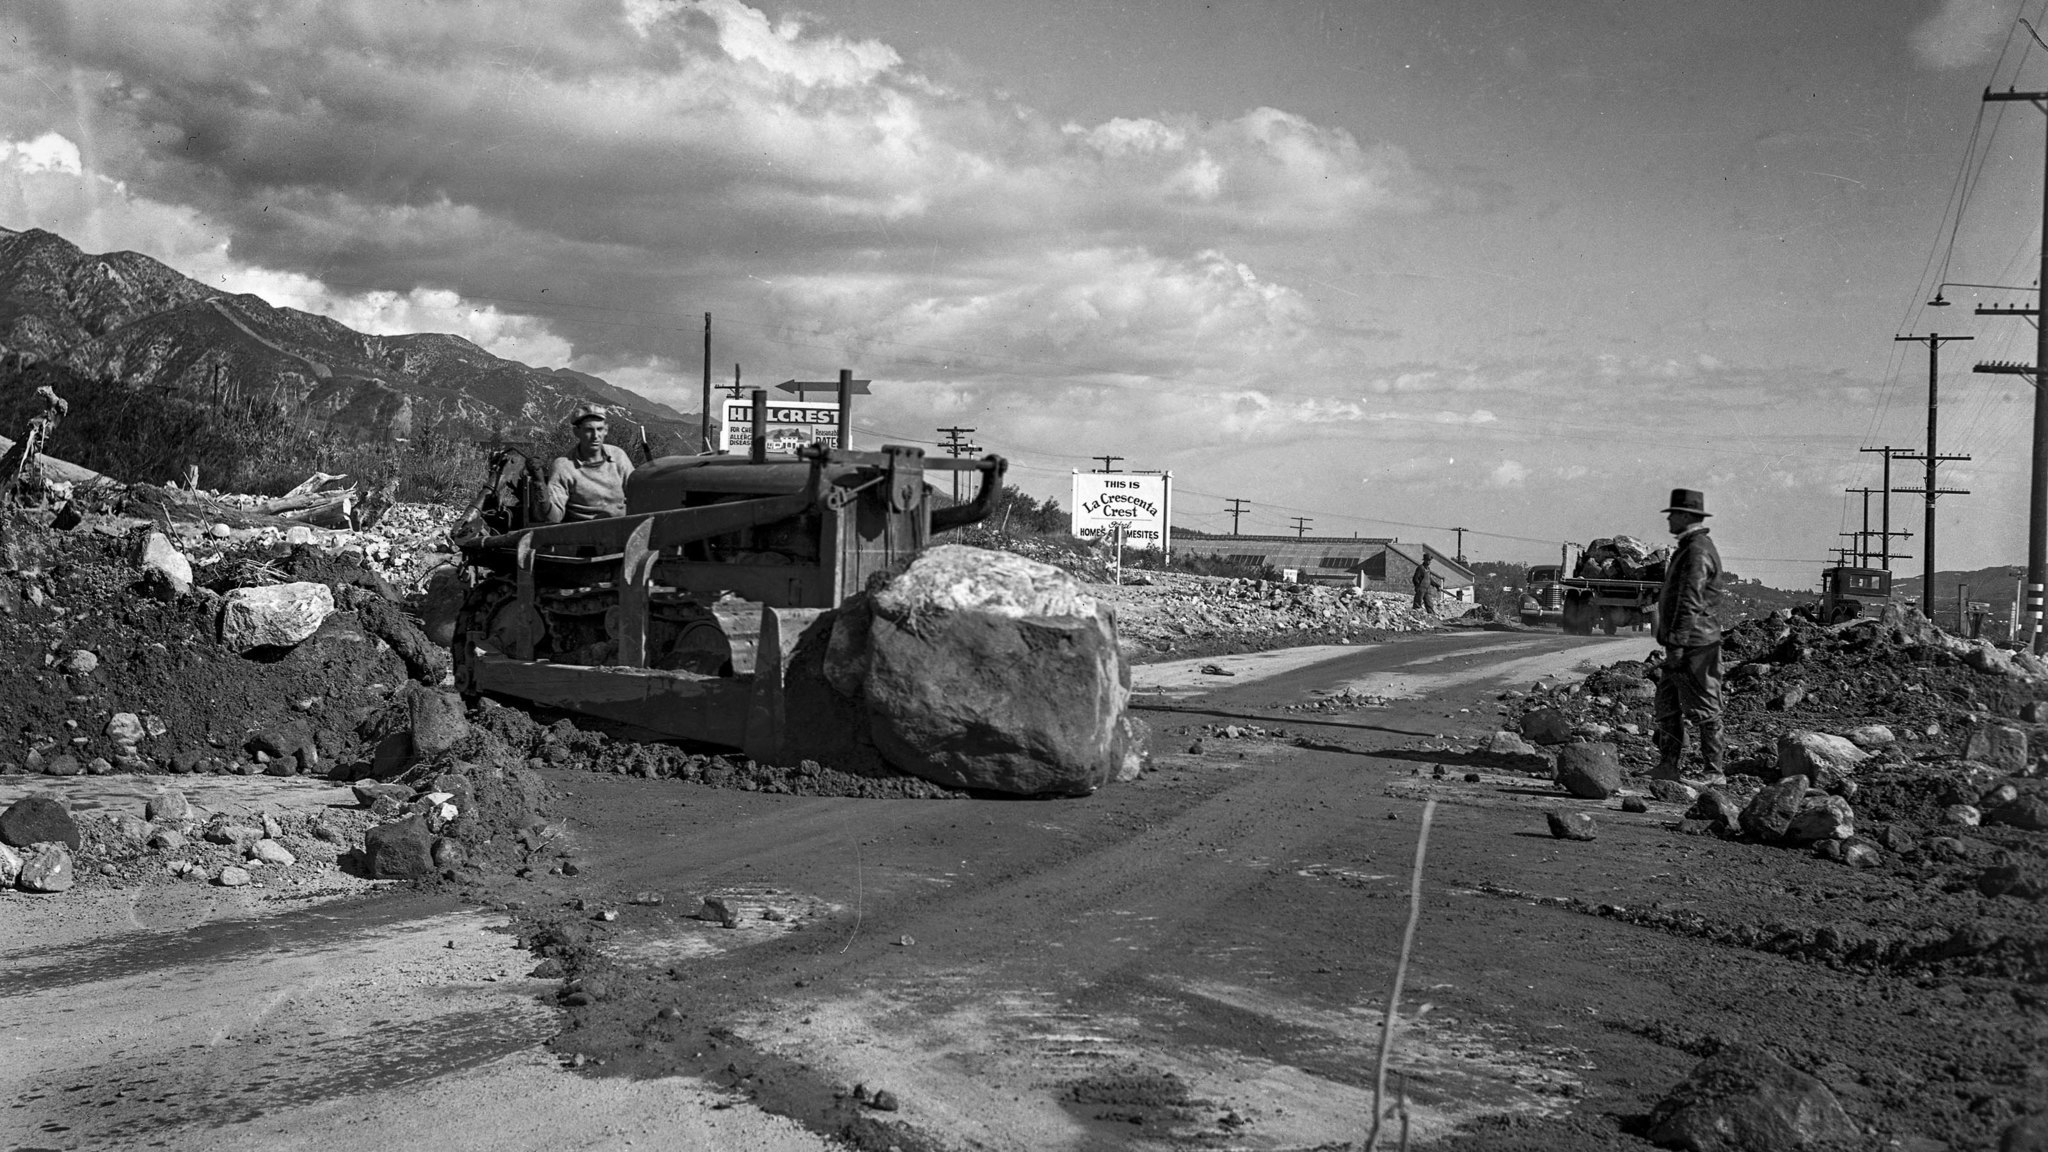 March 4, 1938: Road crew removes debris from Foothill Boulevard at Lowell Street near Tujunga. This